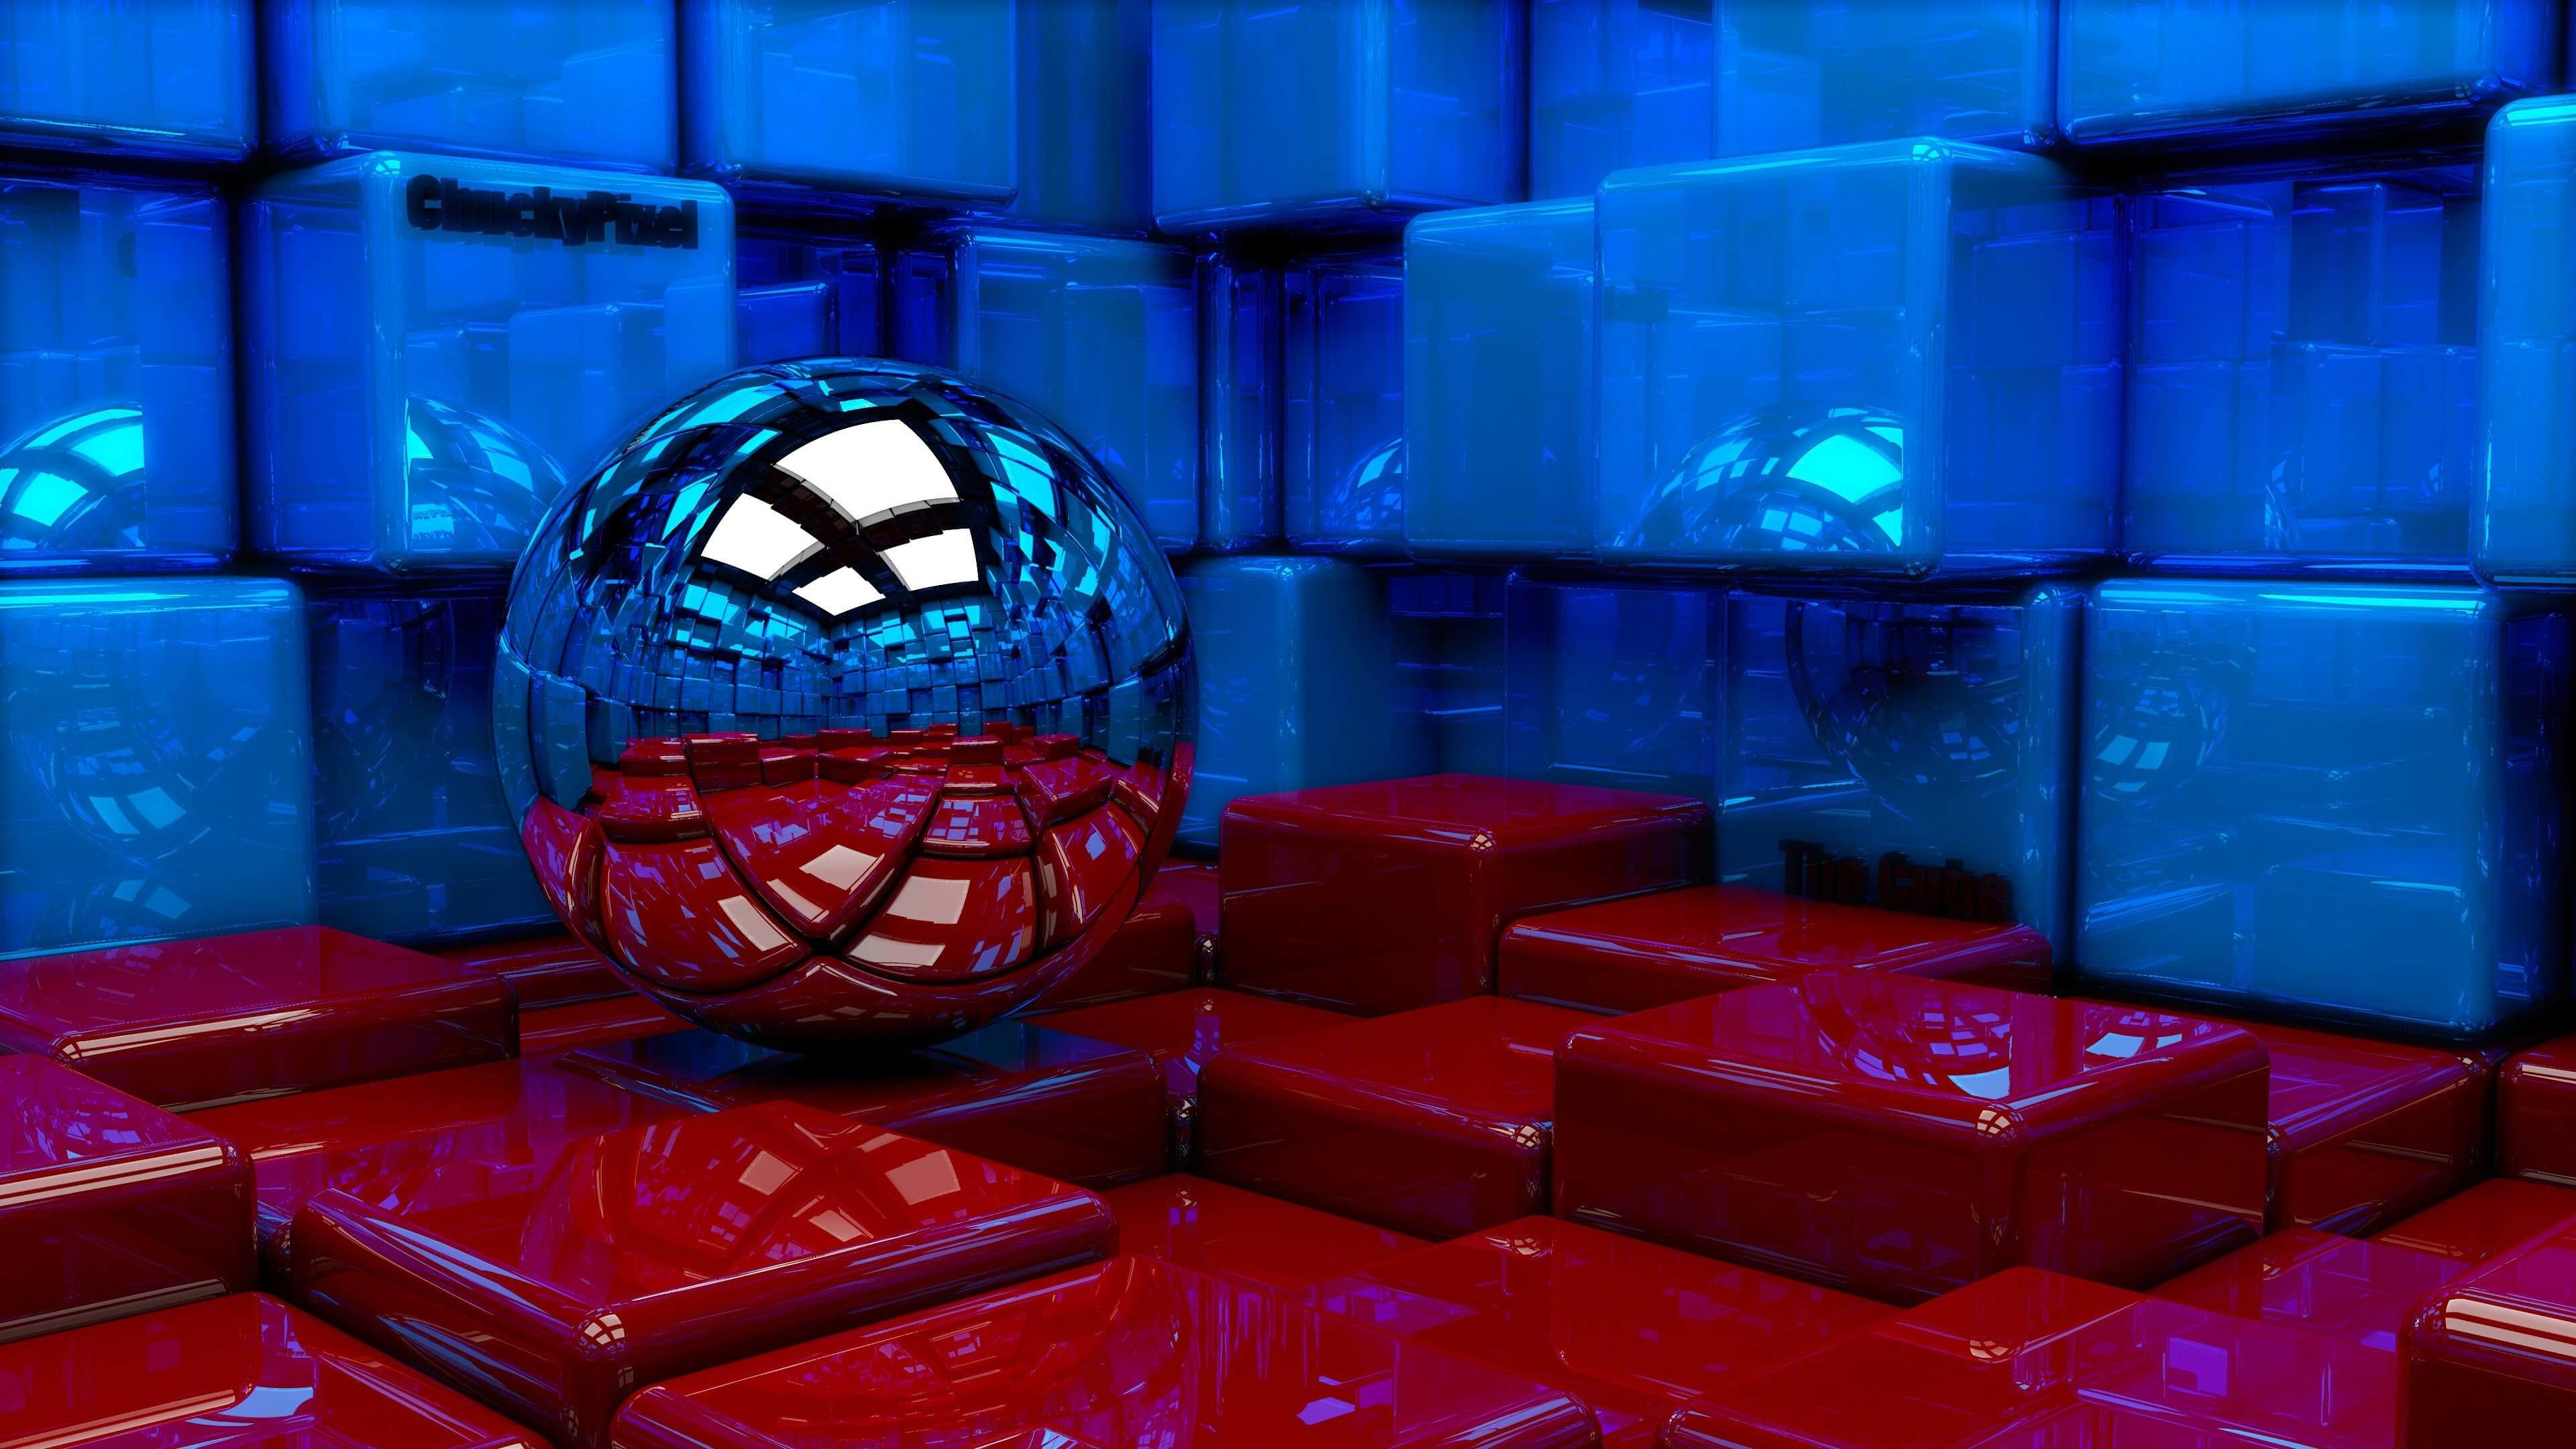 Metallic Sphere Reflecting The Cube Room Wallpaper for Desktop 4K 3840x2160